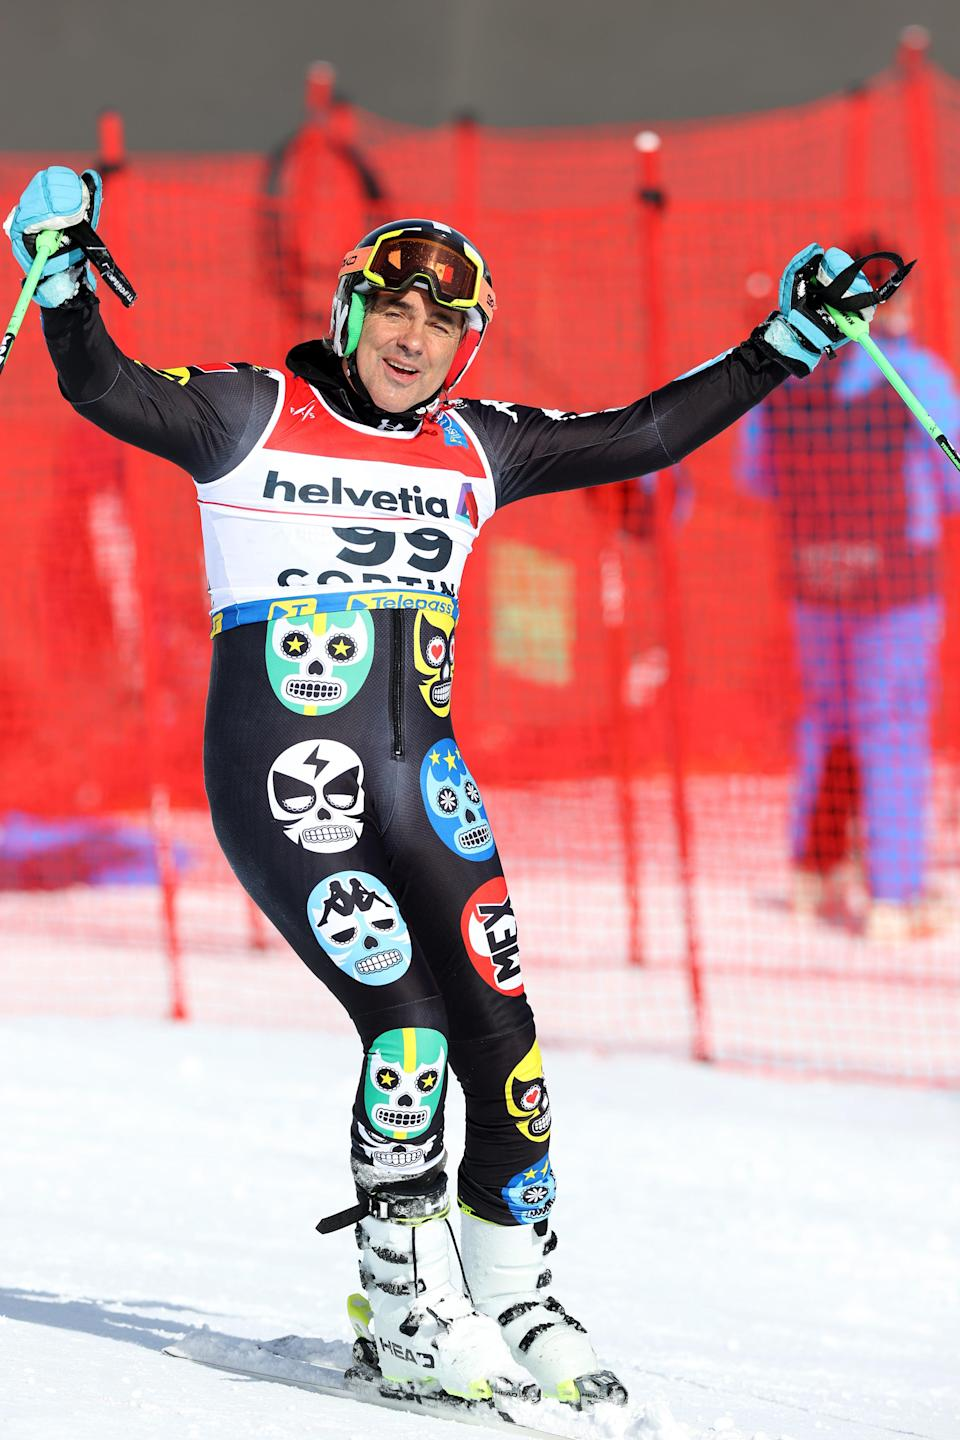 Hubertus von Hohenlohe at the 2018 Olympic games wearing skulls on outfit